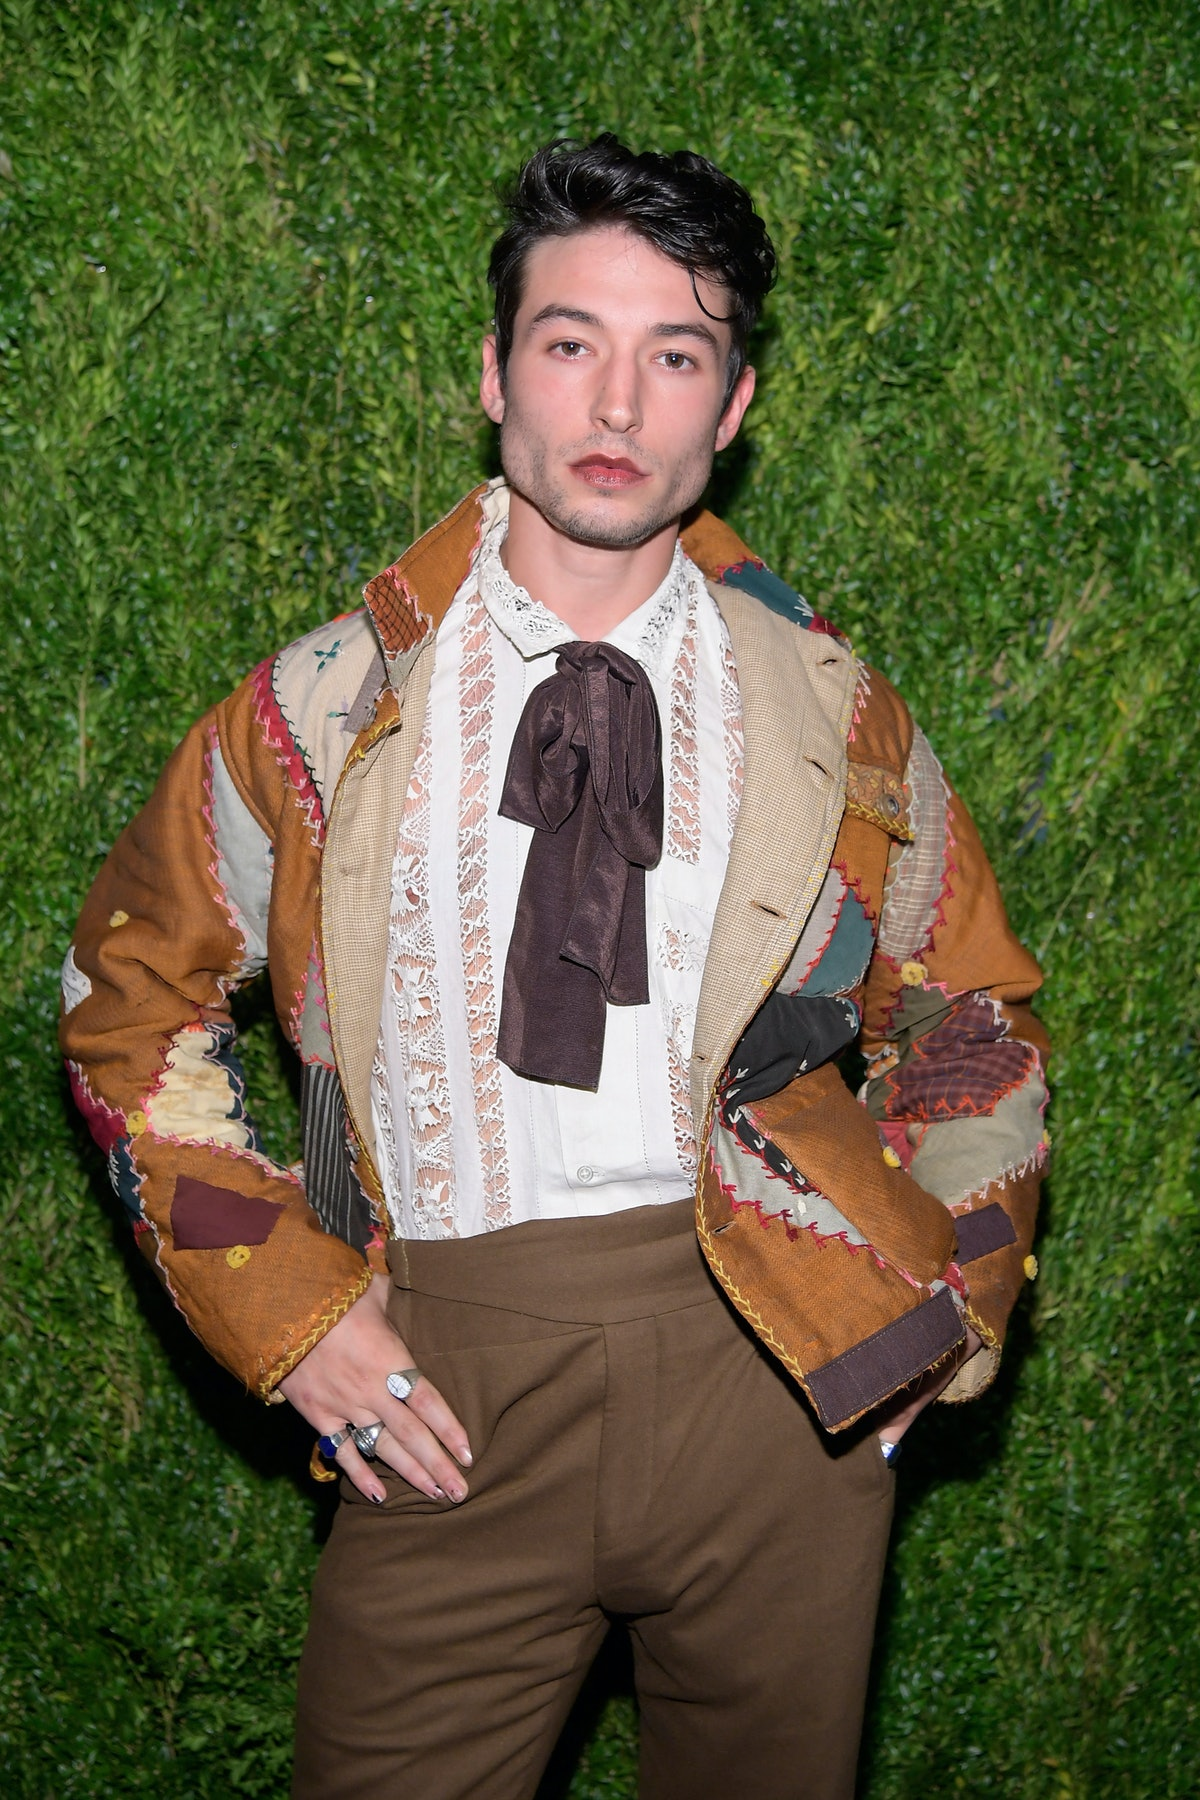 Ezra Miller Opened Up About Johnny Depp's Casting In 'Fantastic Beasts' & His Reaction Might Surprise You